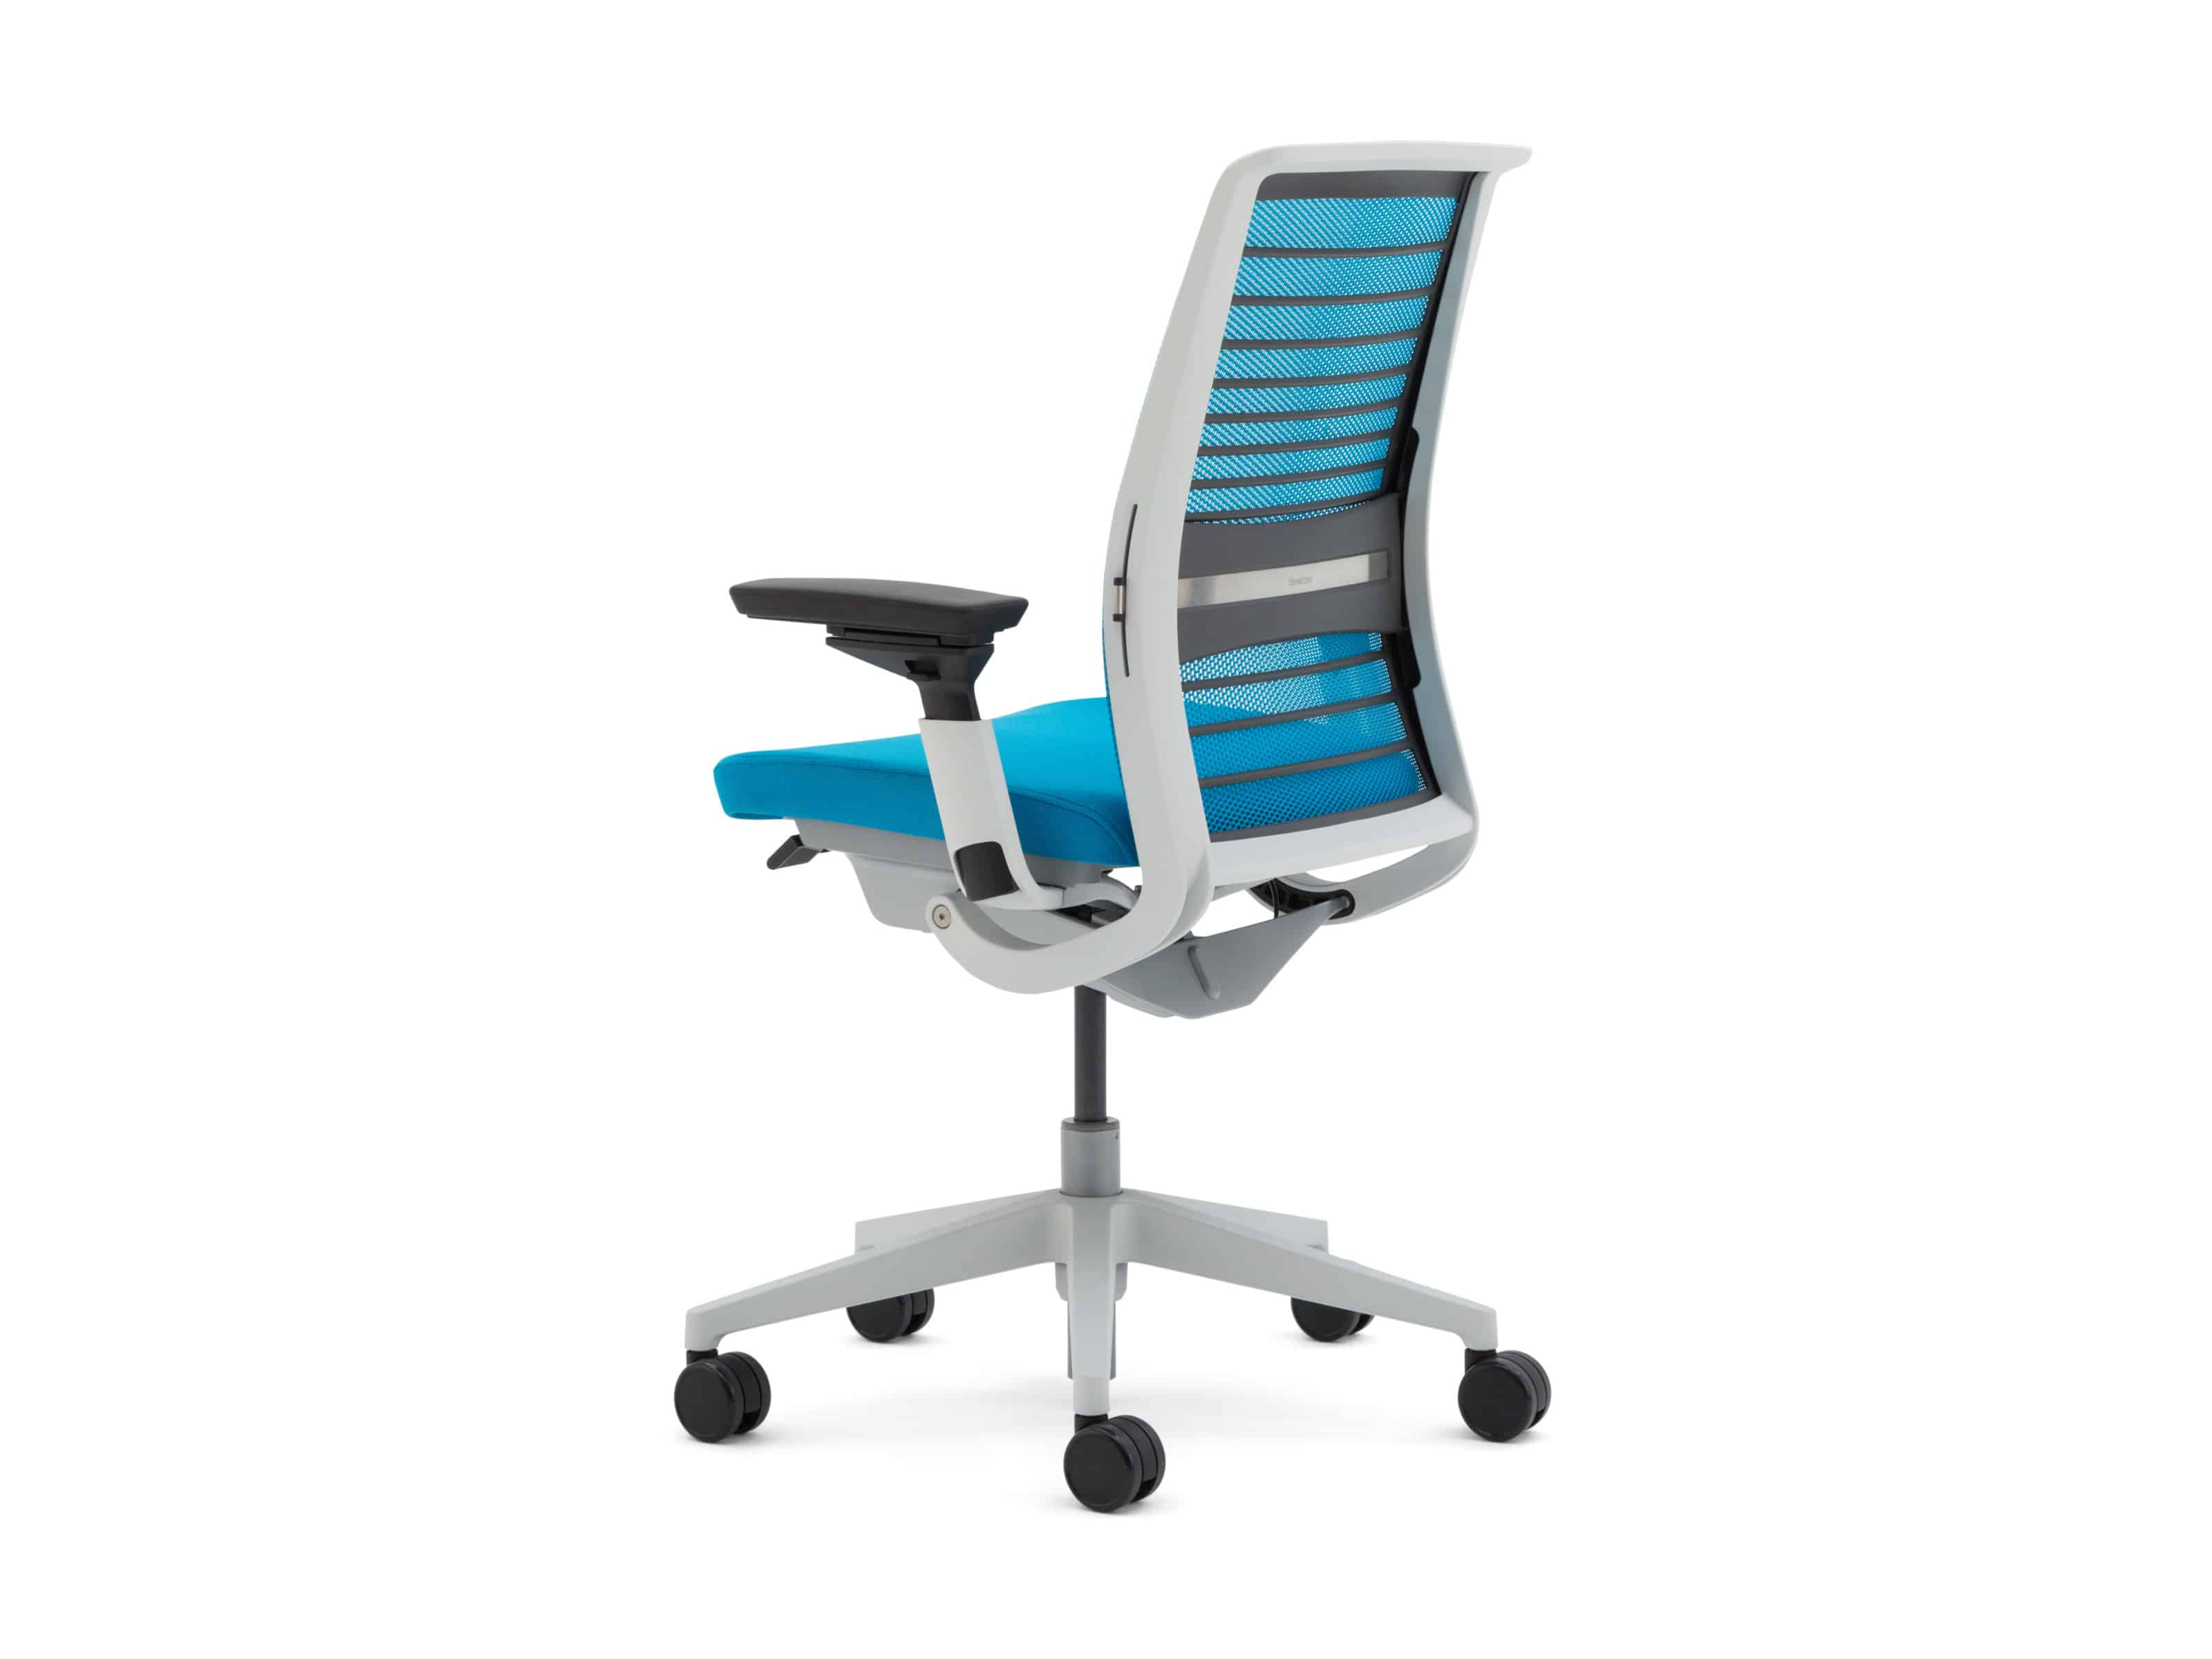 Think Chair From Steelcase 900